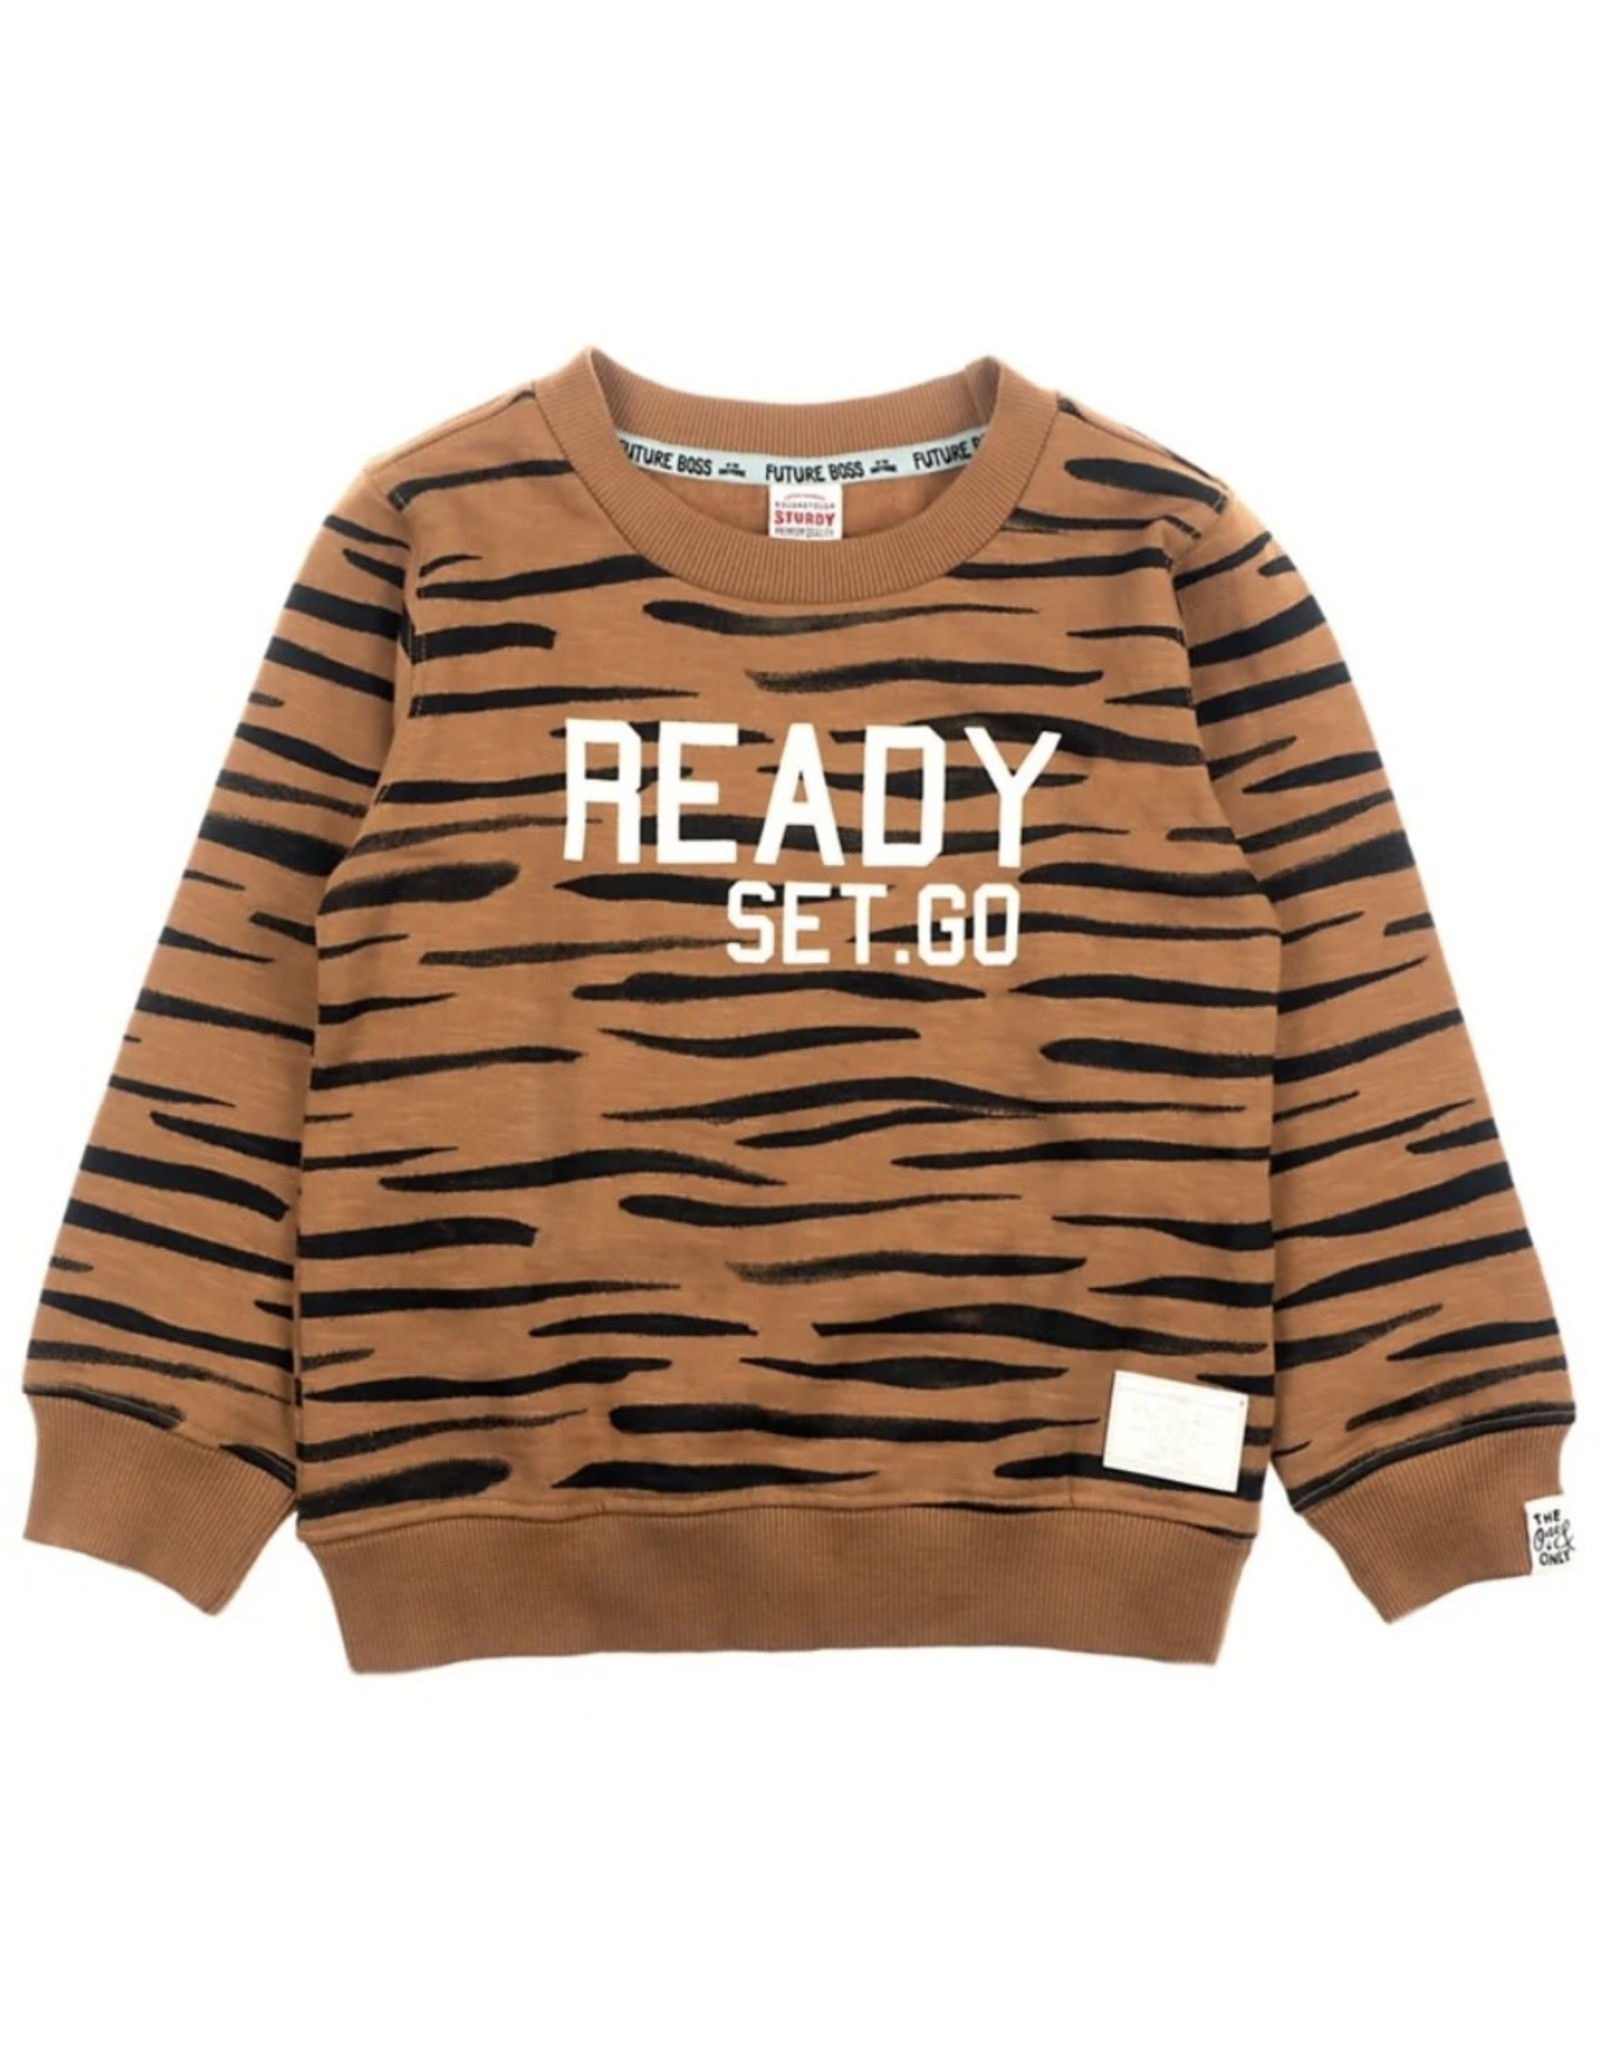 Sturdy 716.00399 sweater